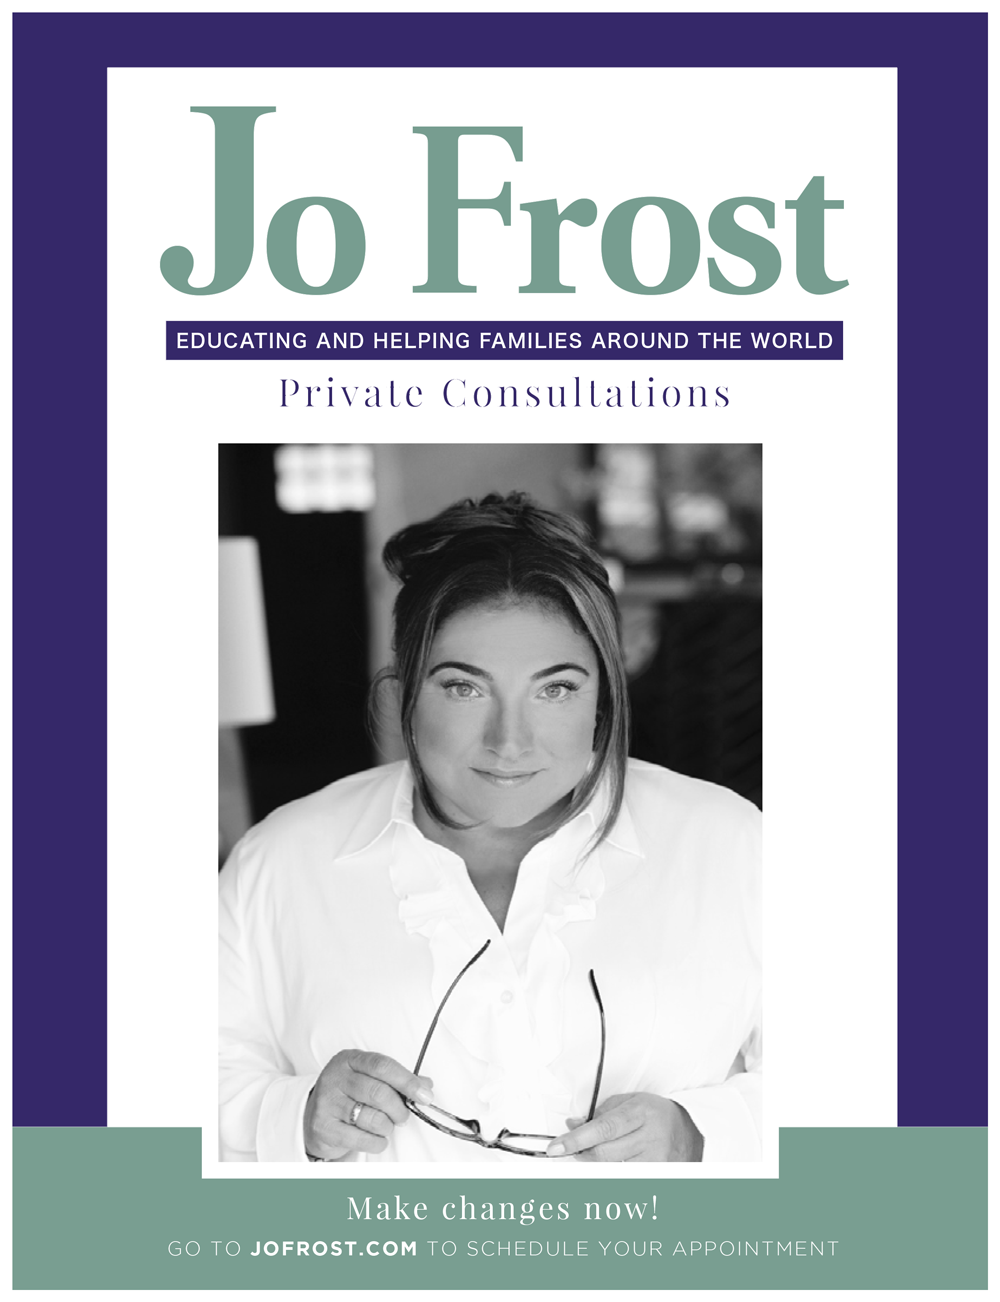 JoFrost com – JoFrost's official website